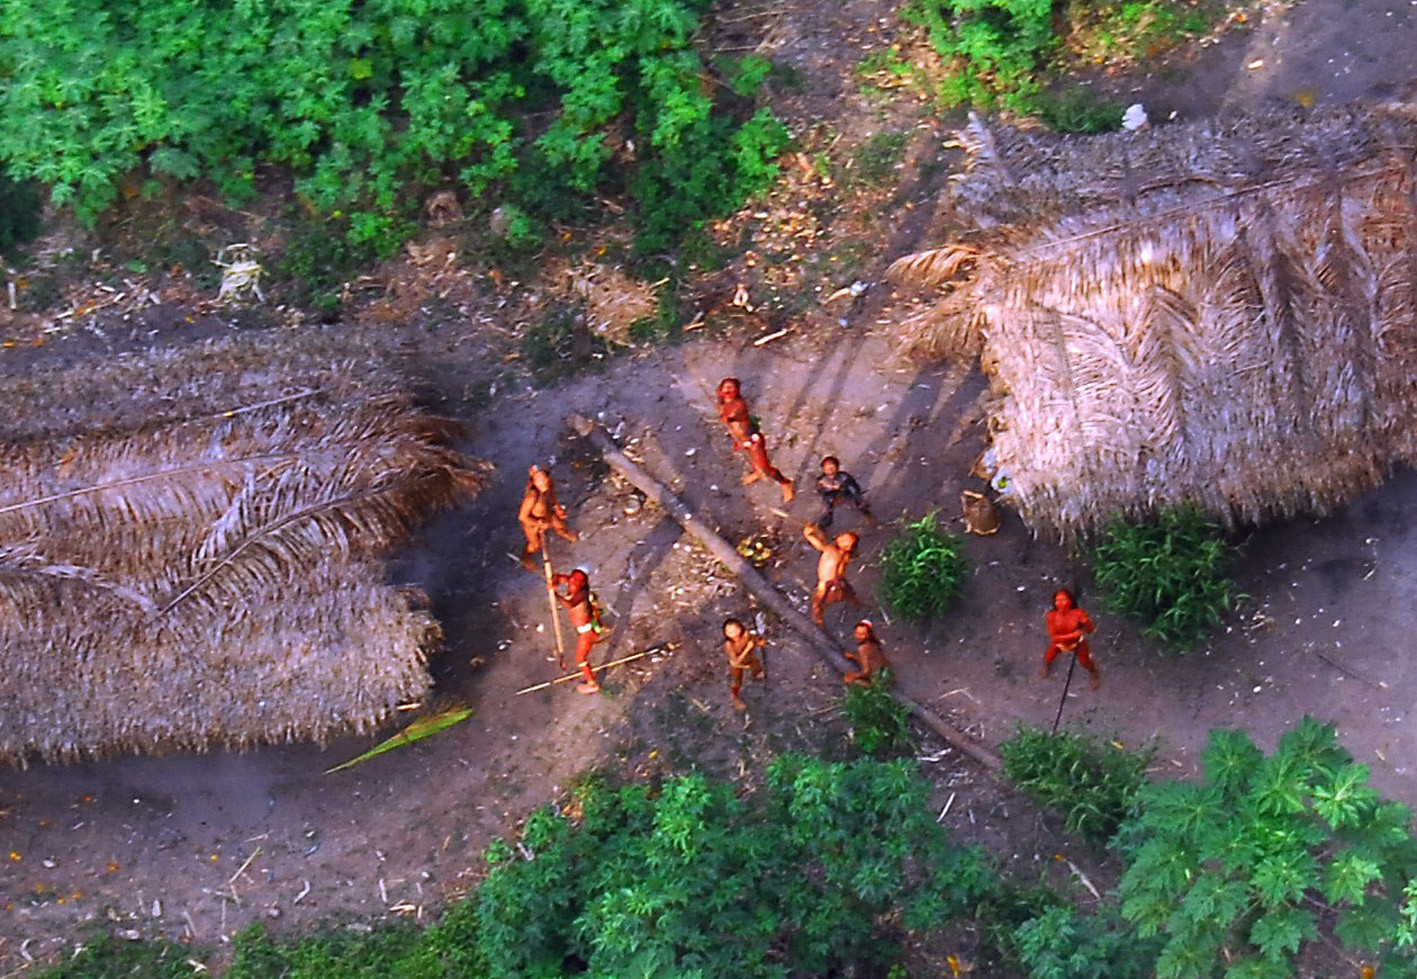 This Amazon Tribe Lived Without The Outside World Until I Drunkenly Made First Contact